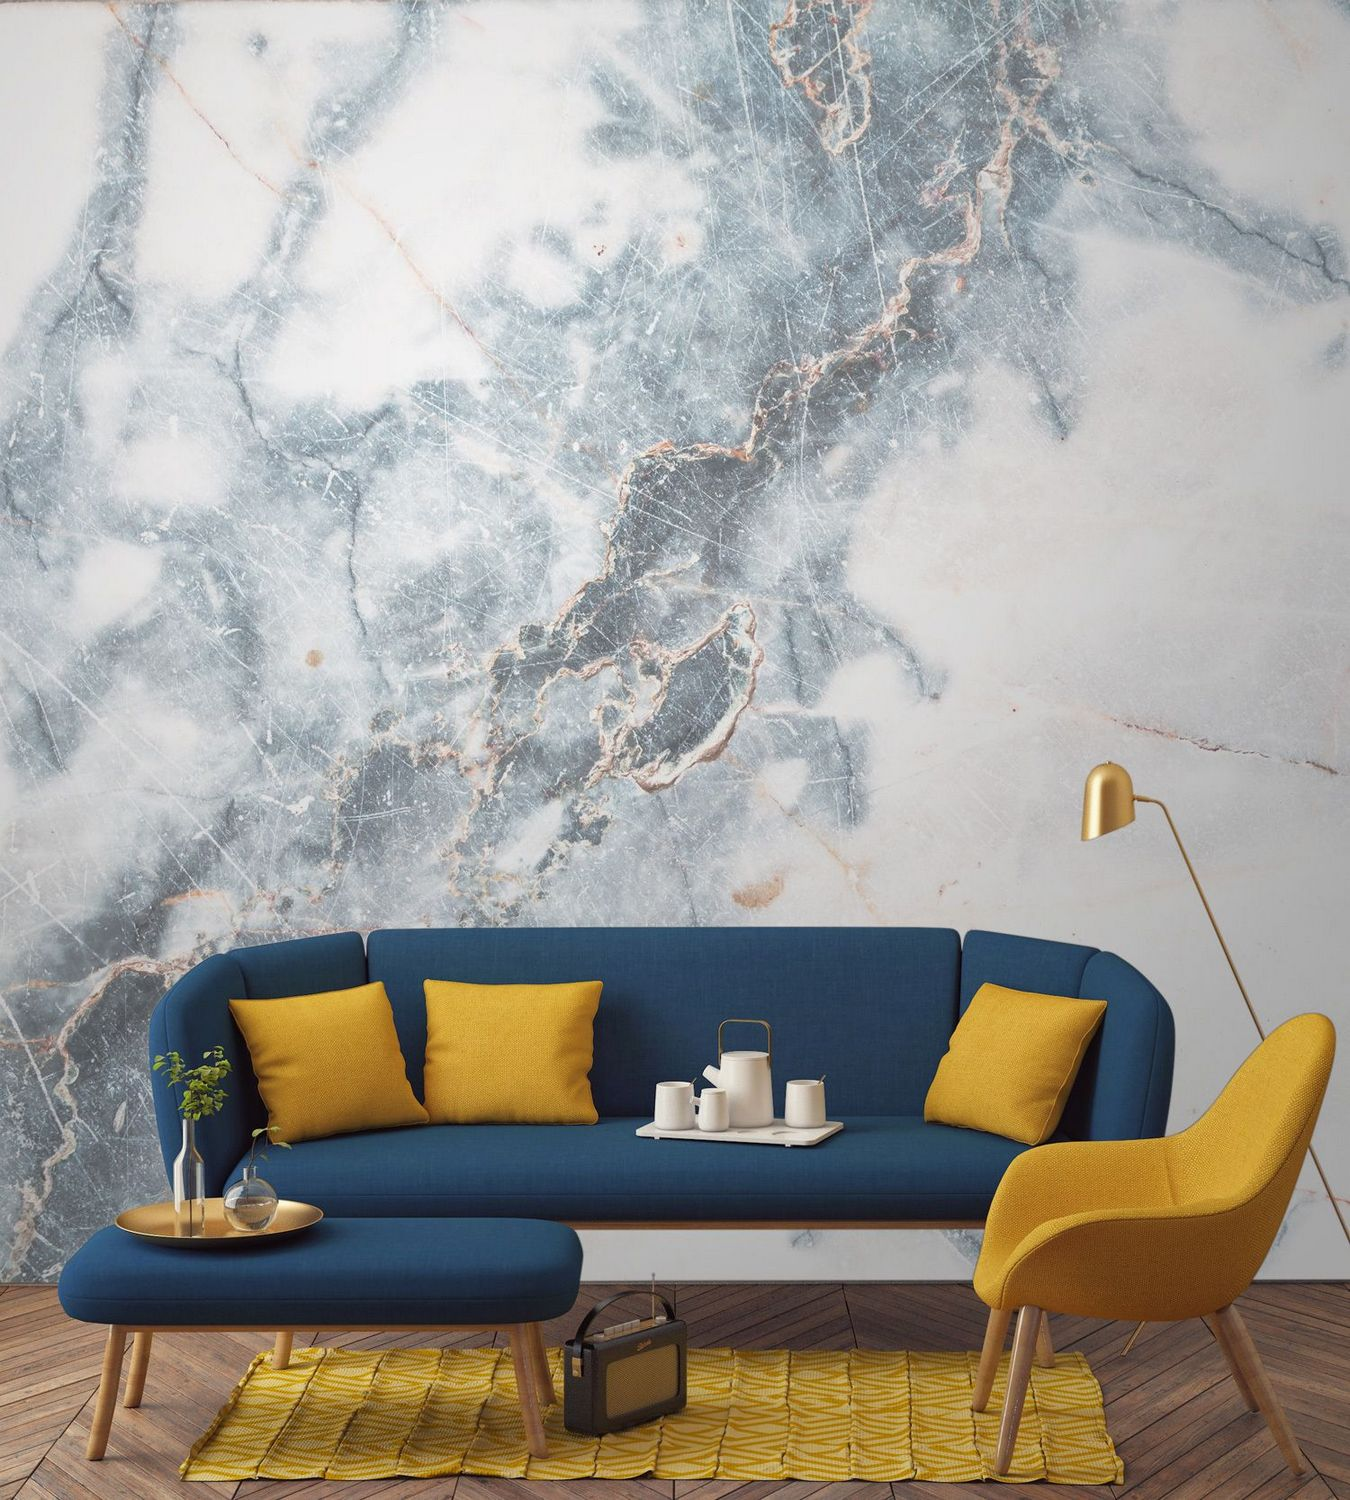 Marble Style Wallpaper Blue And Mustard Yellow Living Room 600x670 Download Hd Wallpaper Wallpapertip